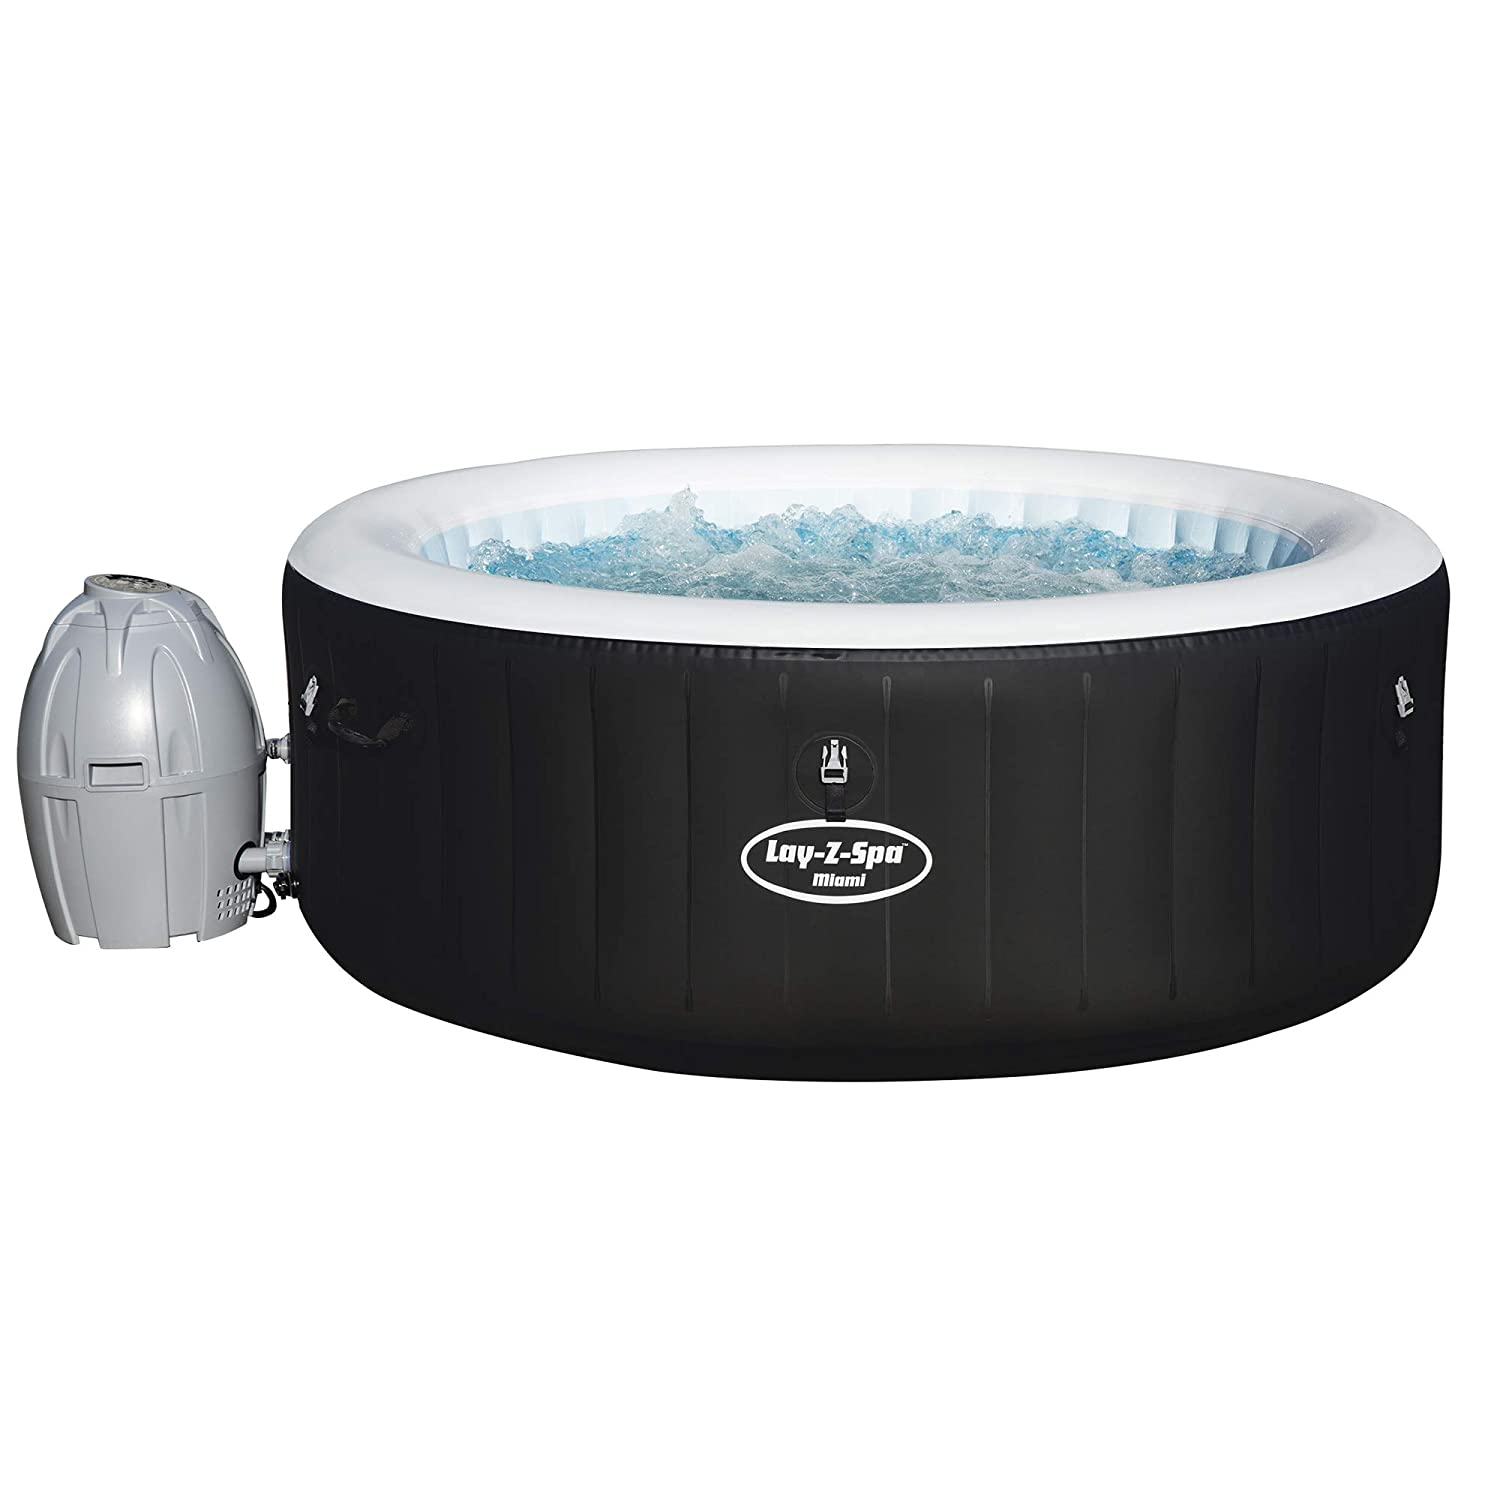 Attraktiva Lay-Z-Spa Miami Hot Tub, AirJet Inflatable Spa, 2-4 Person: Amazon LL-89